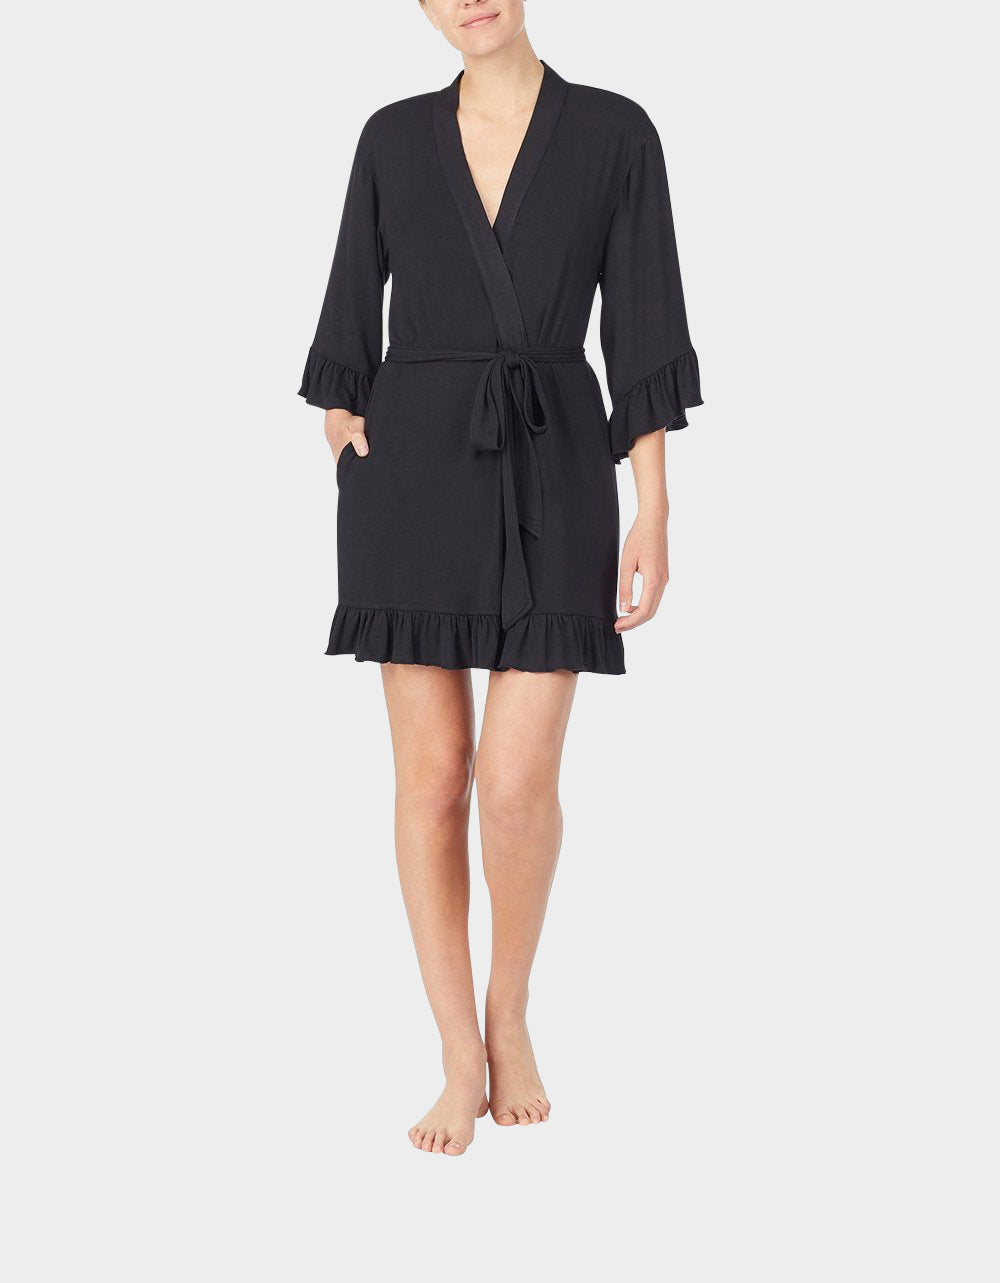 BETSEYS NEW RAYON KNIT ROBE BLACK - APPAREL - Betsey Johnson